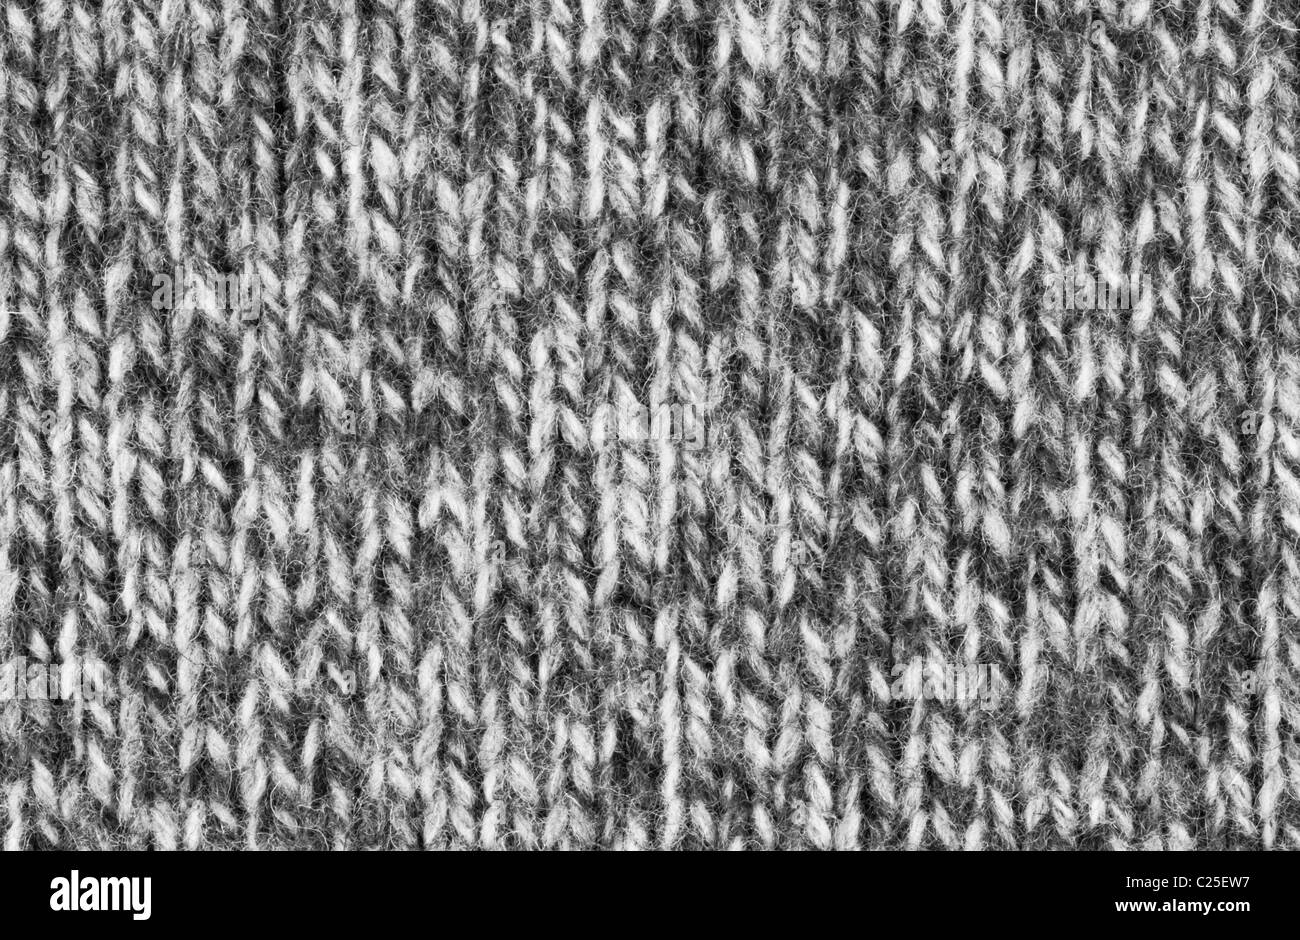 Black and white woven wool texture - Stock Image